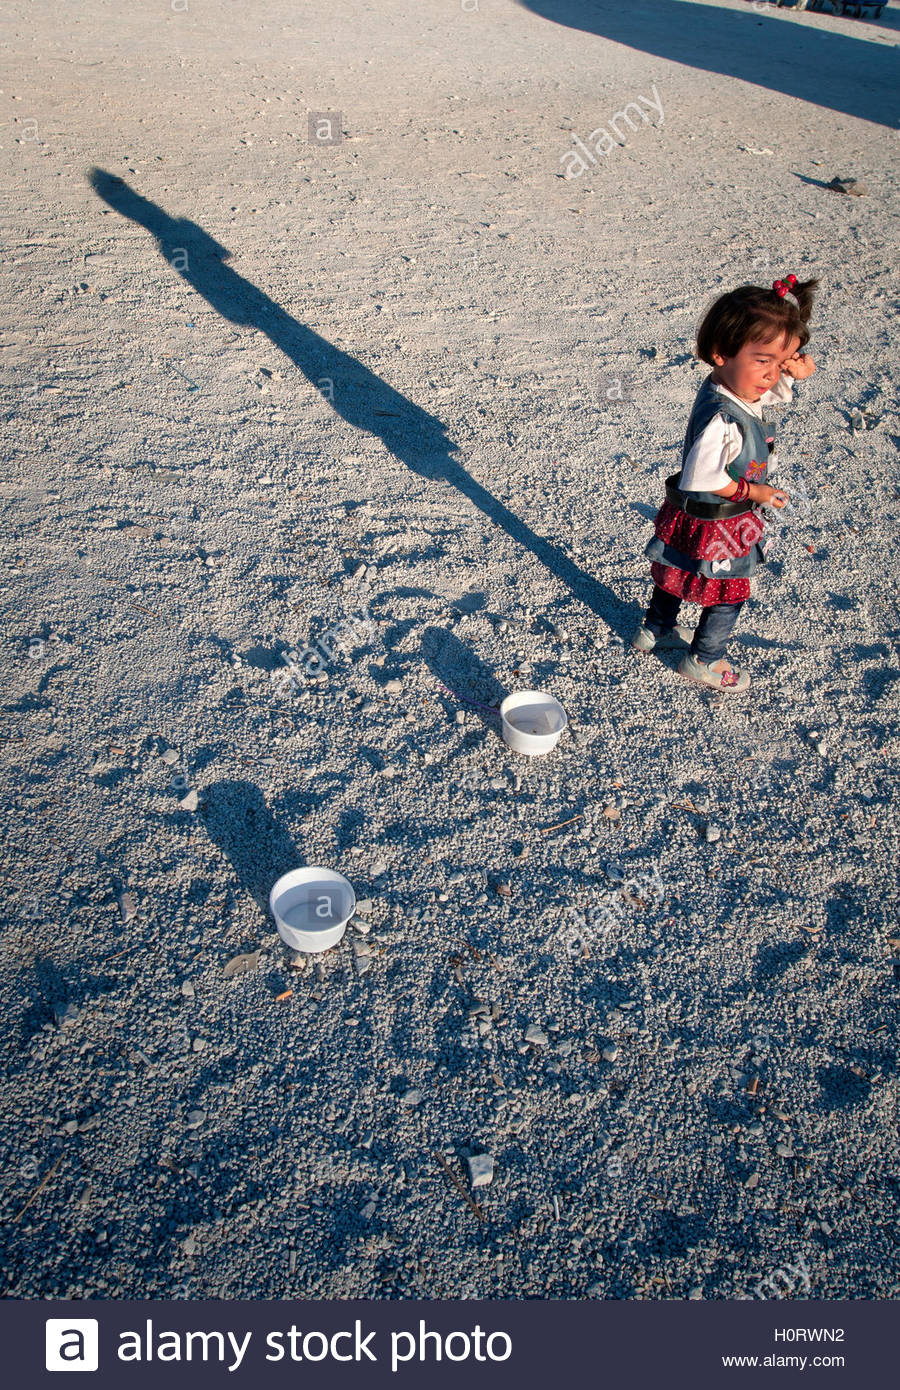 A lone child at Moria Refugee Camp in Lesbos, Greece. - Stock Image